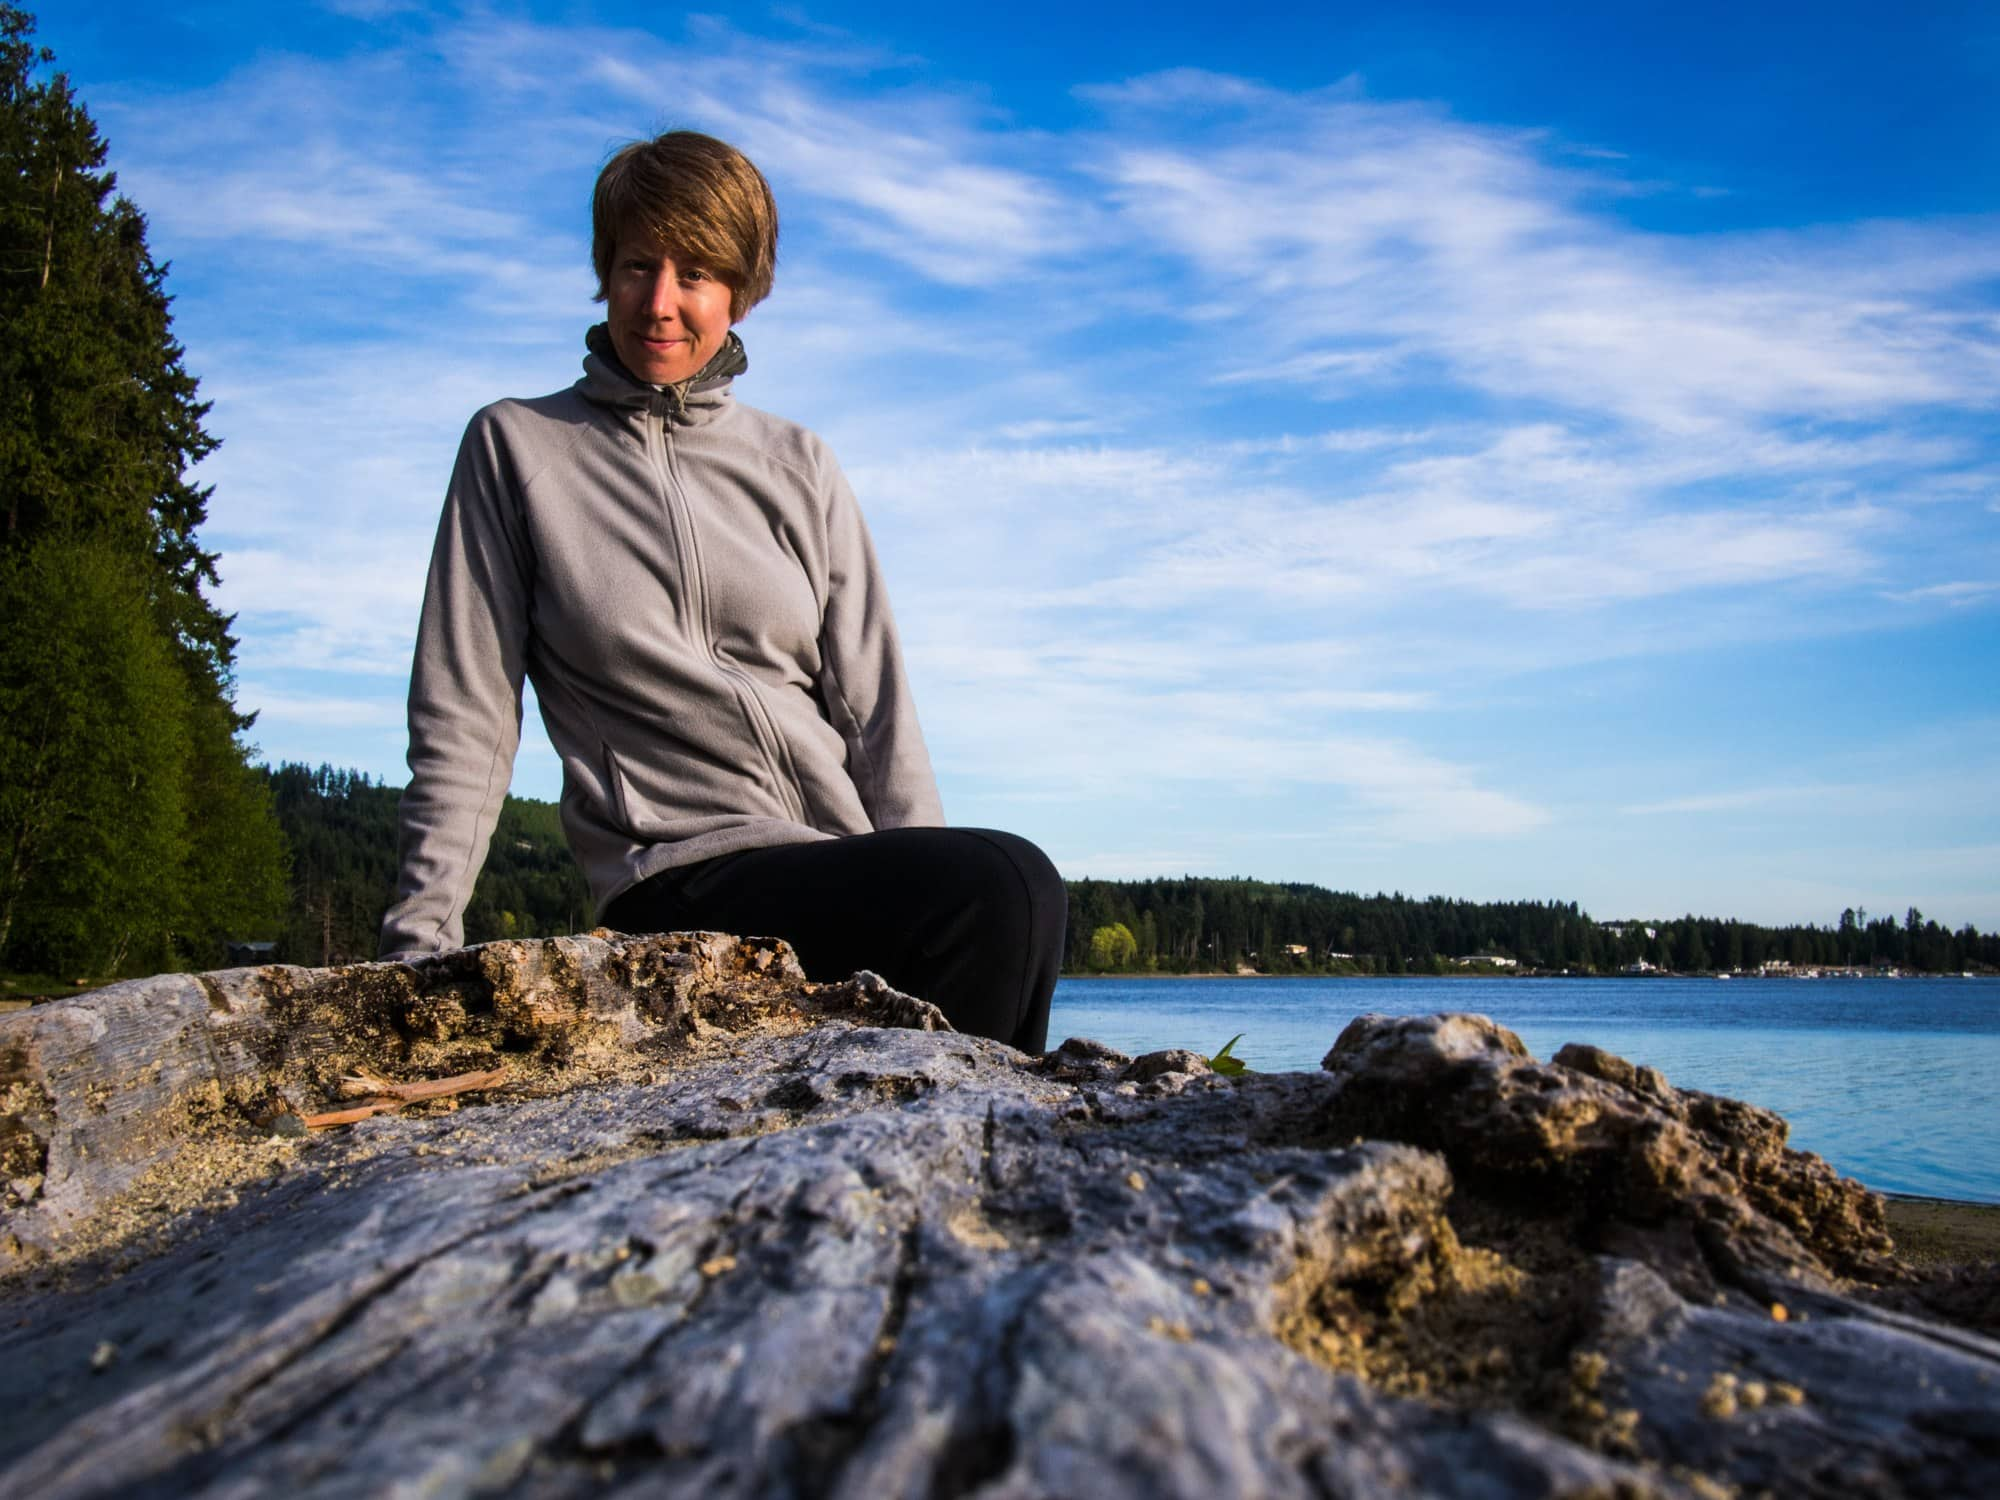 jane at the beach in sechelt